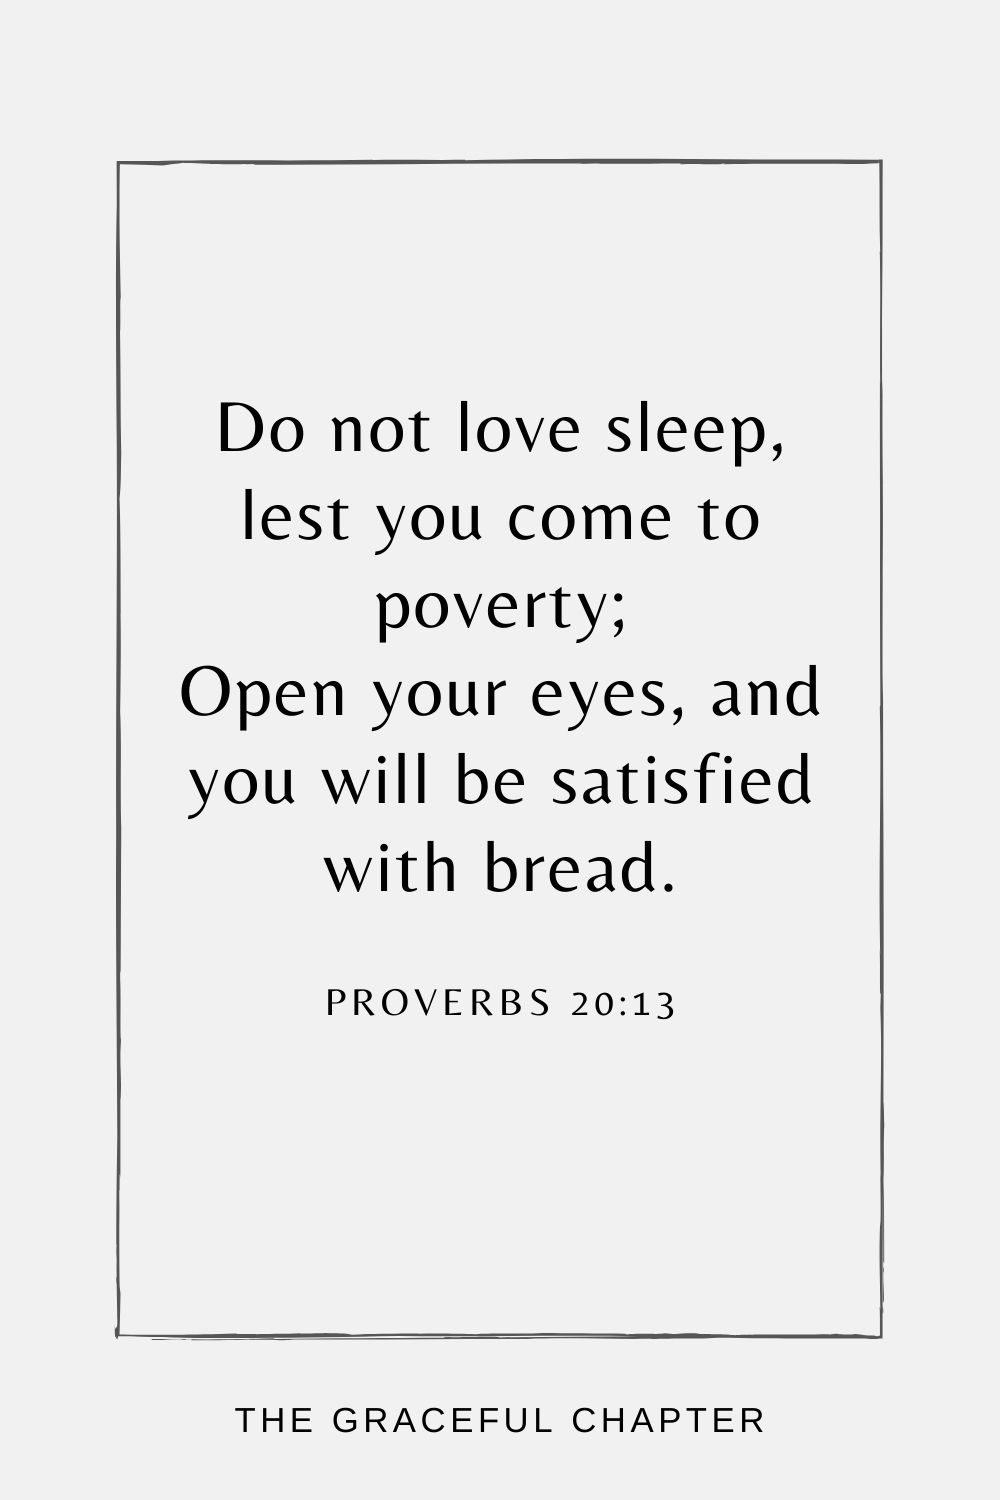 Do not love sleep, lest you come to poverty; Open your eyes, and you will be satisfied with bread. Proverbs 20:13